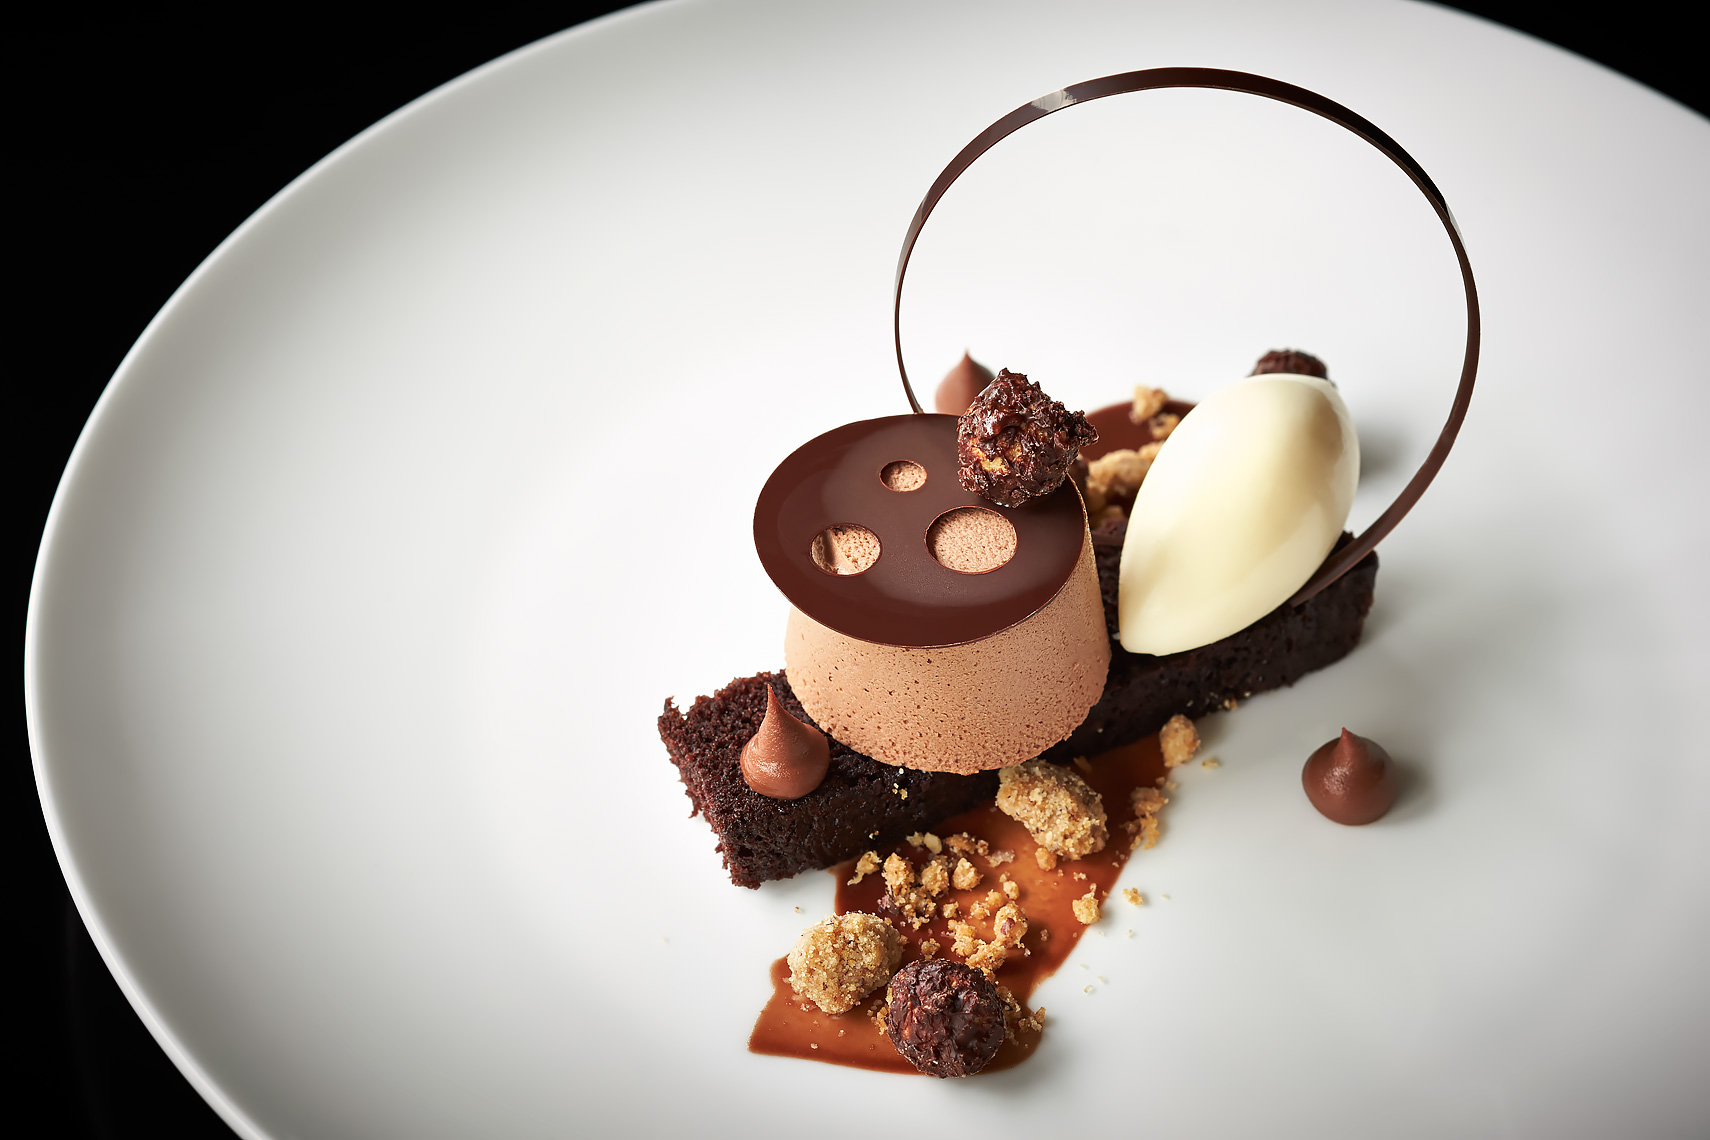 FOOD-Desserts30-Capella-Grill-Room-Chocolate-Mouse